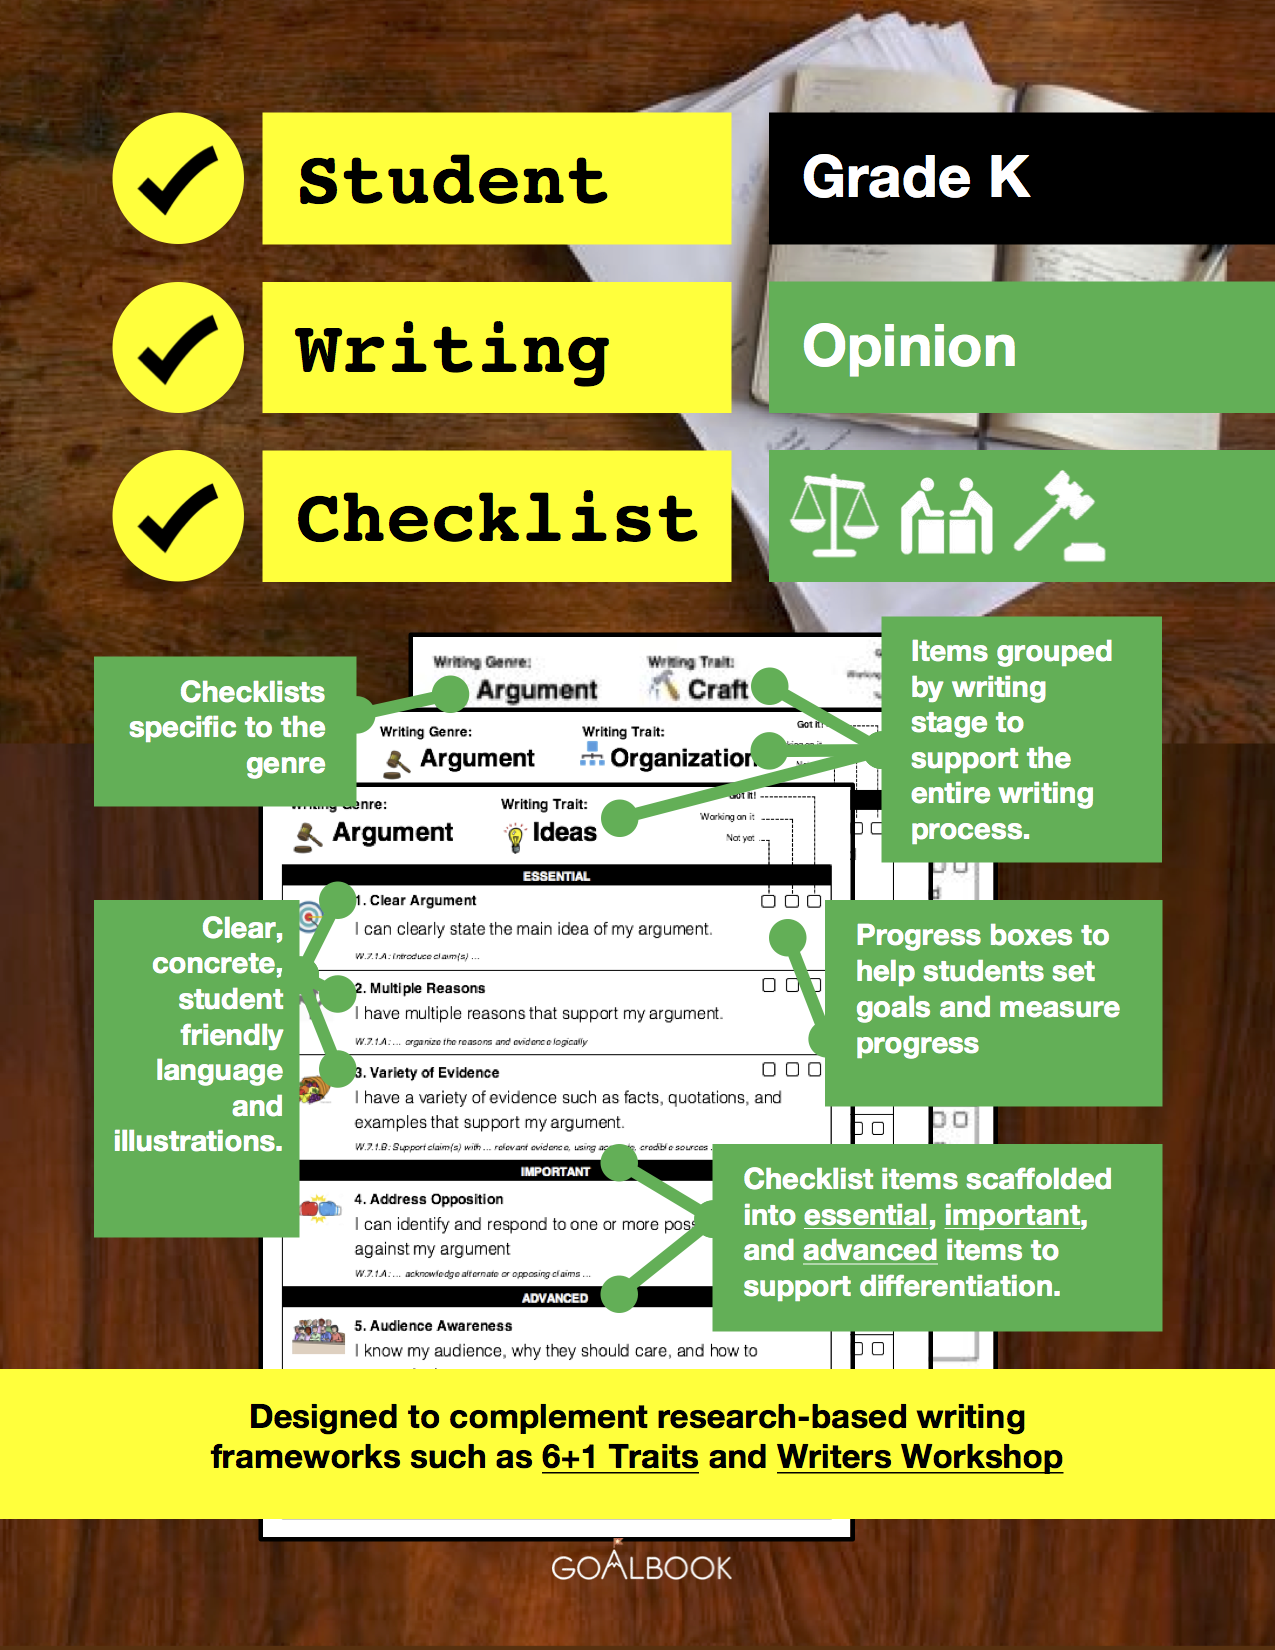 Student Writing Checklist: Opinion (Grade K)